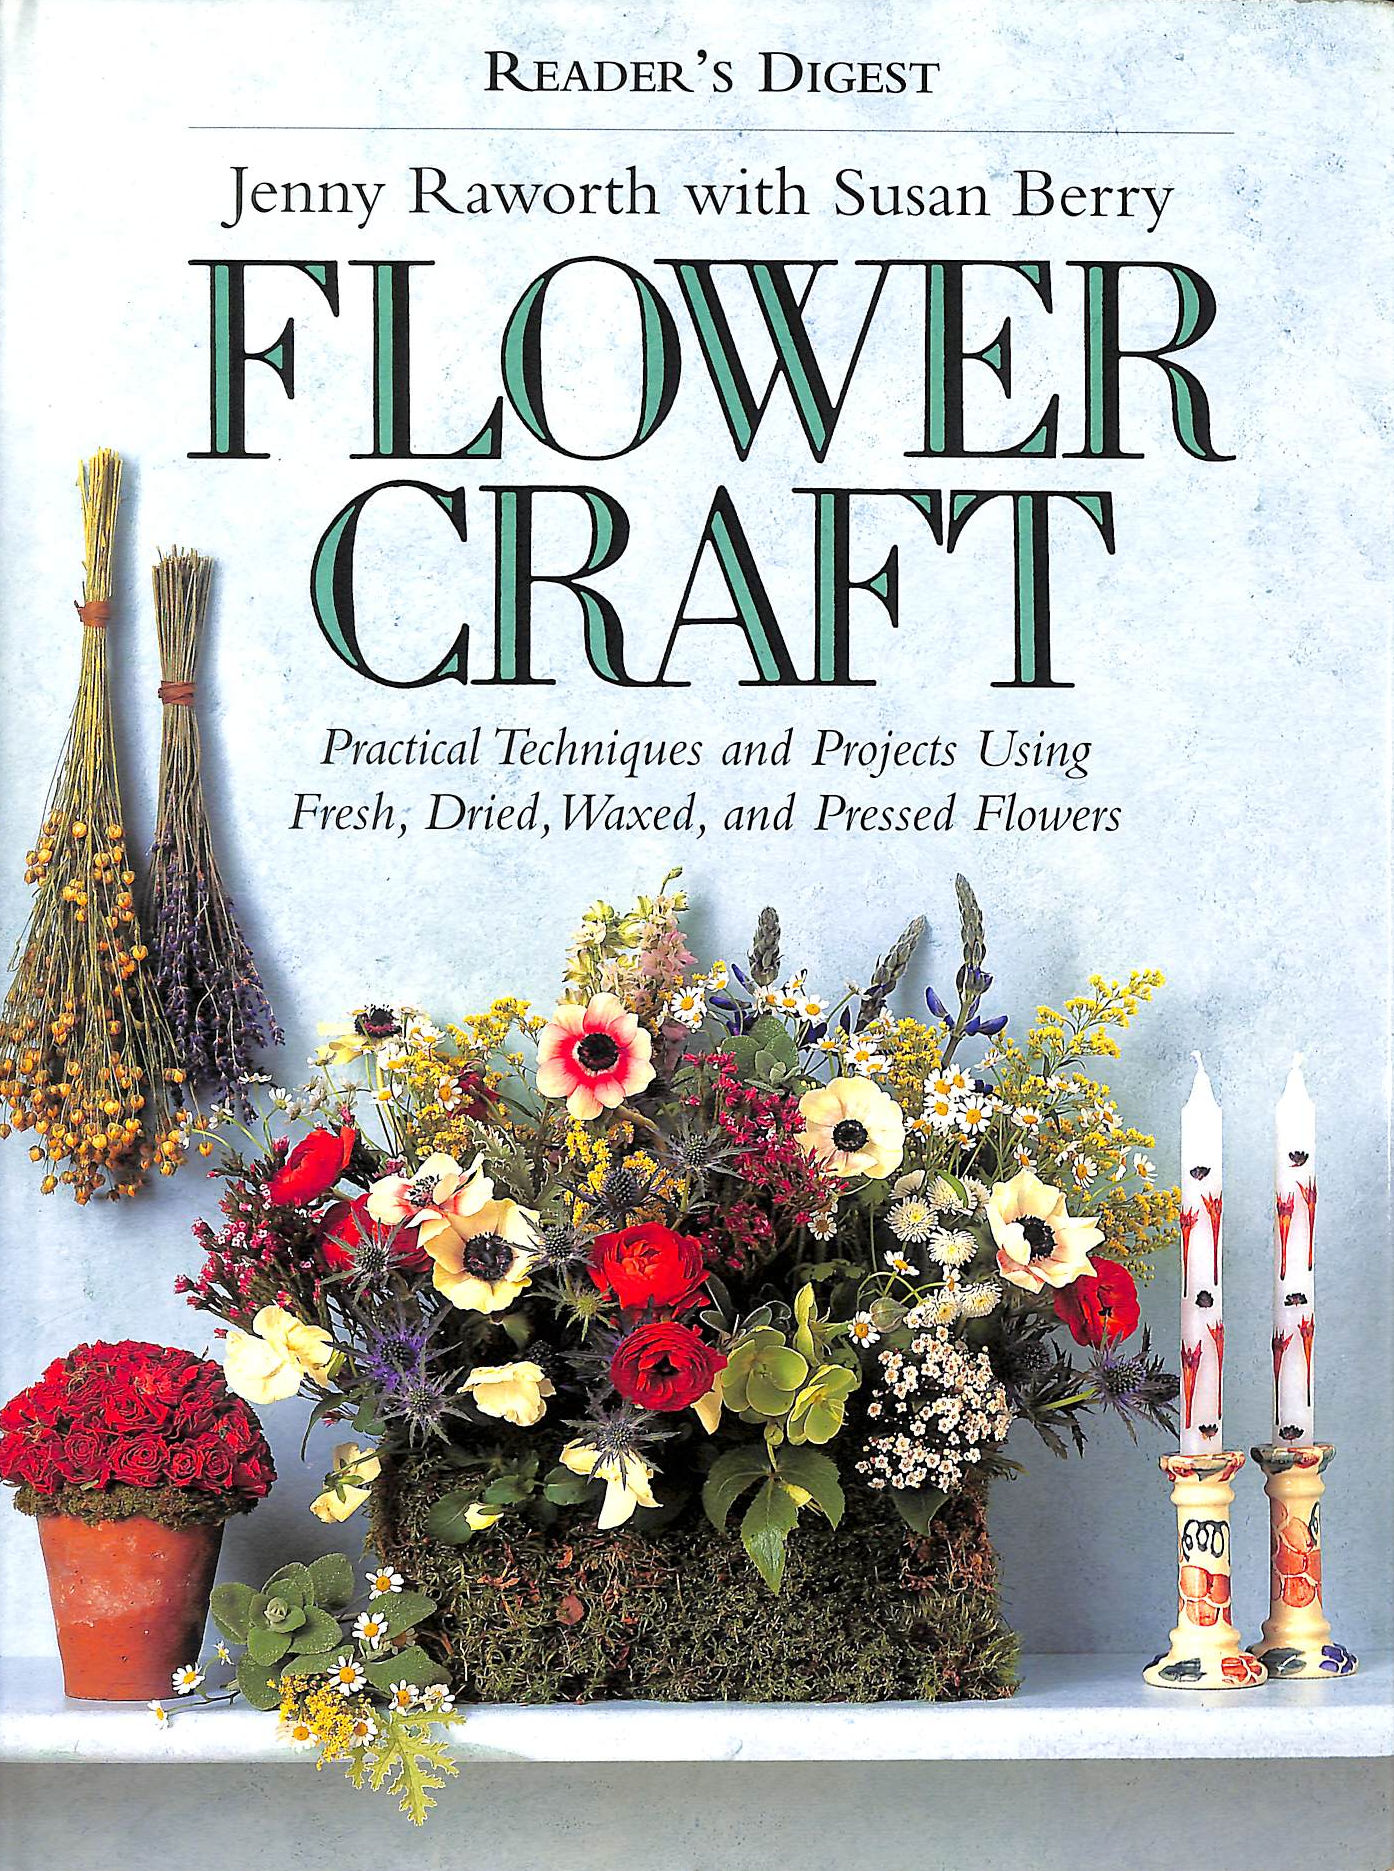 Image for Flowercraft: Practical Techniques and Projects Using Fresh, Dried, Waxed, and Pressed Flowers